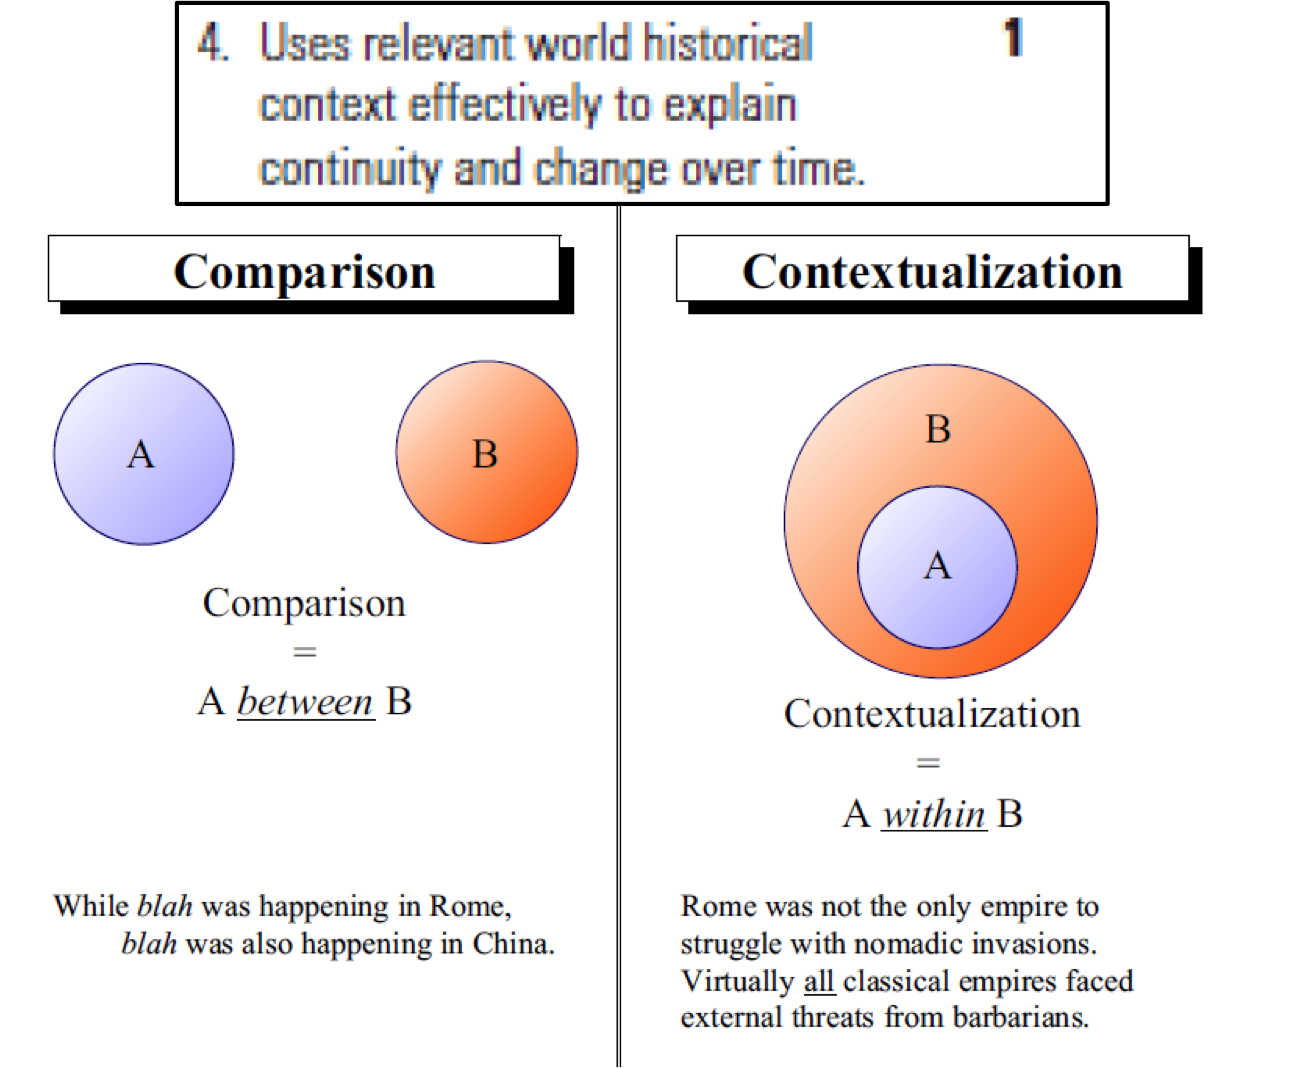 ap world history ccot How to get the highest score possible on the whap ccot (continuity and change over time) essay portion of your exam this exam is 1/6 of your overall score.